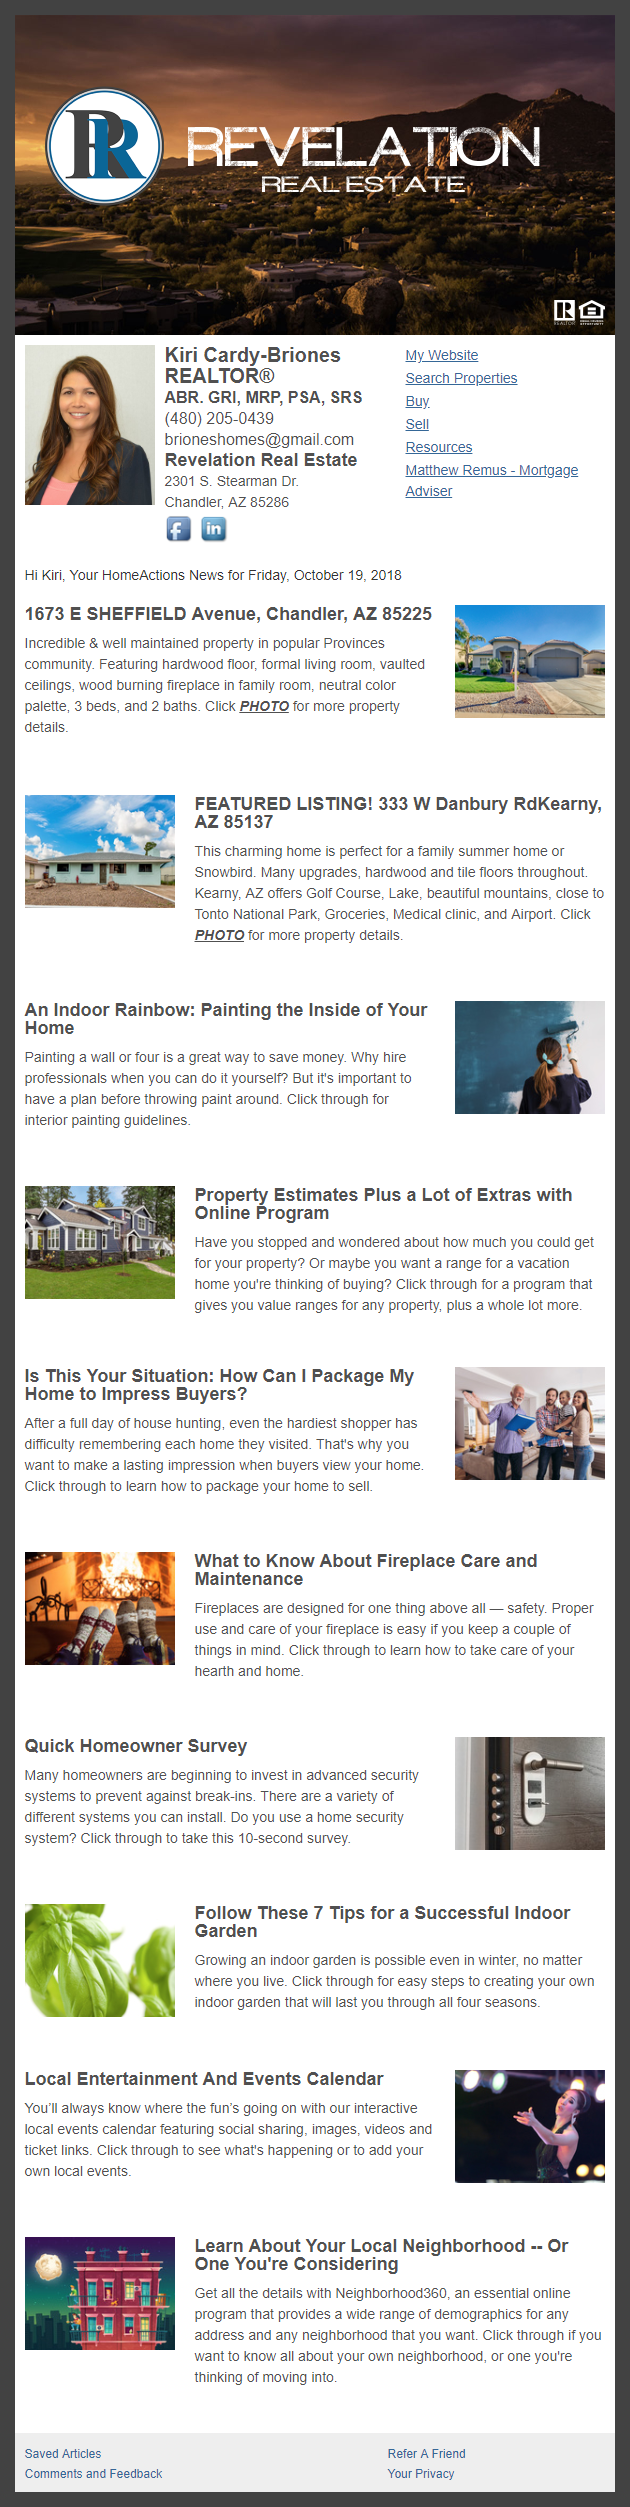 Revelation Real Estate - HomeActions Sample Email Newsletter